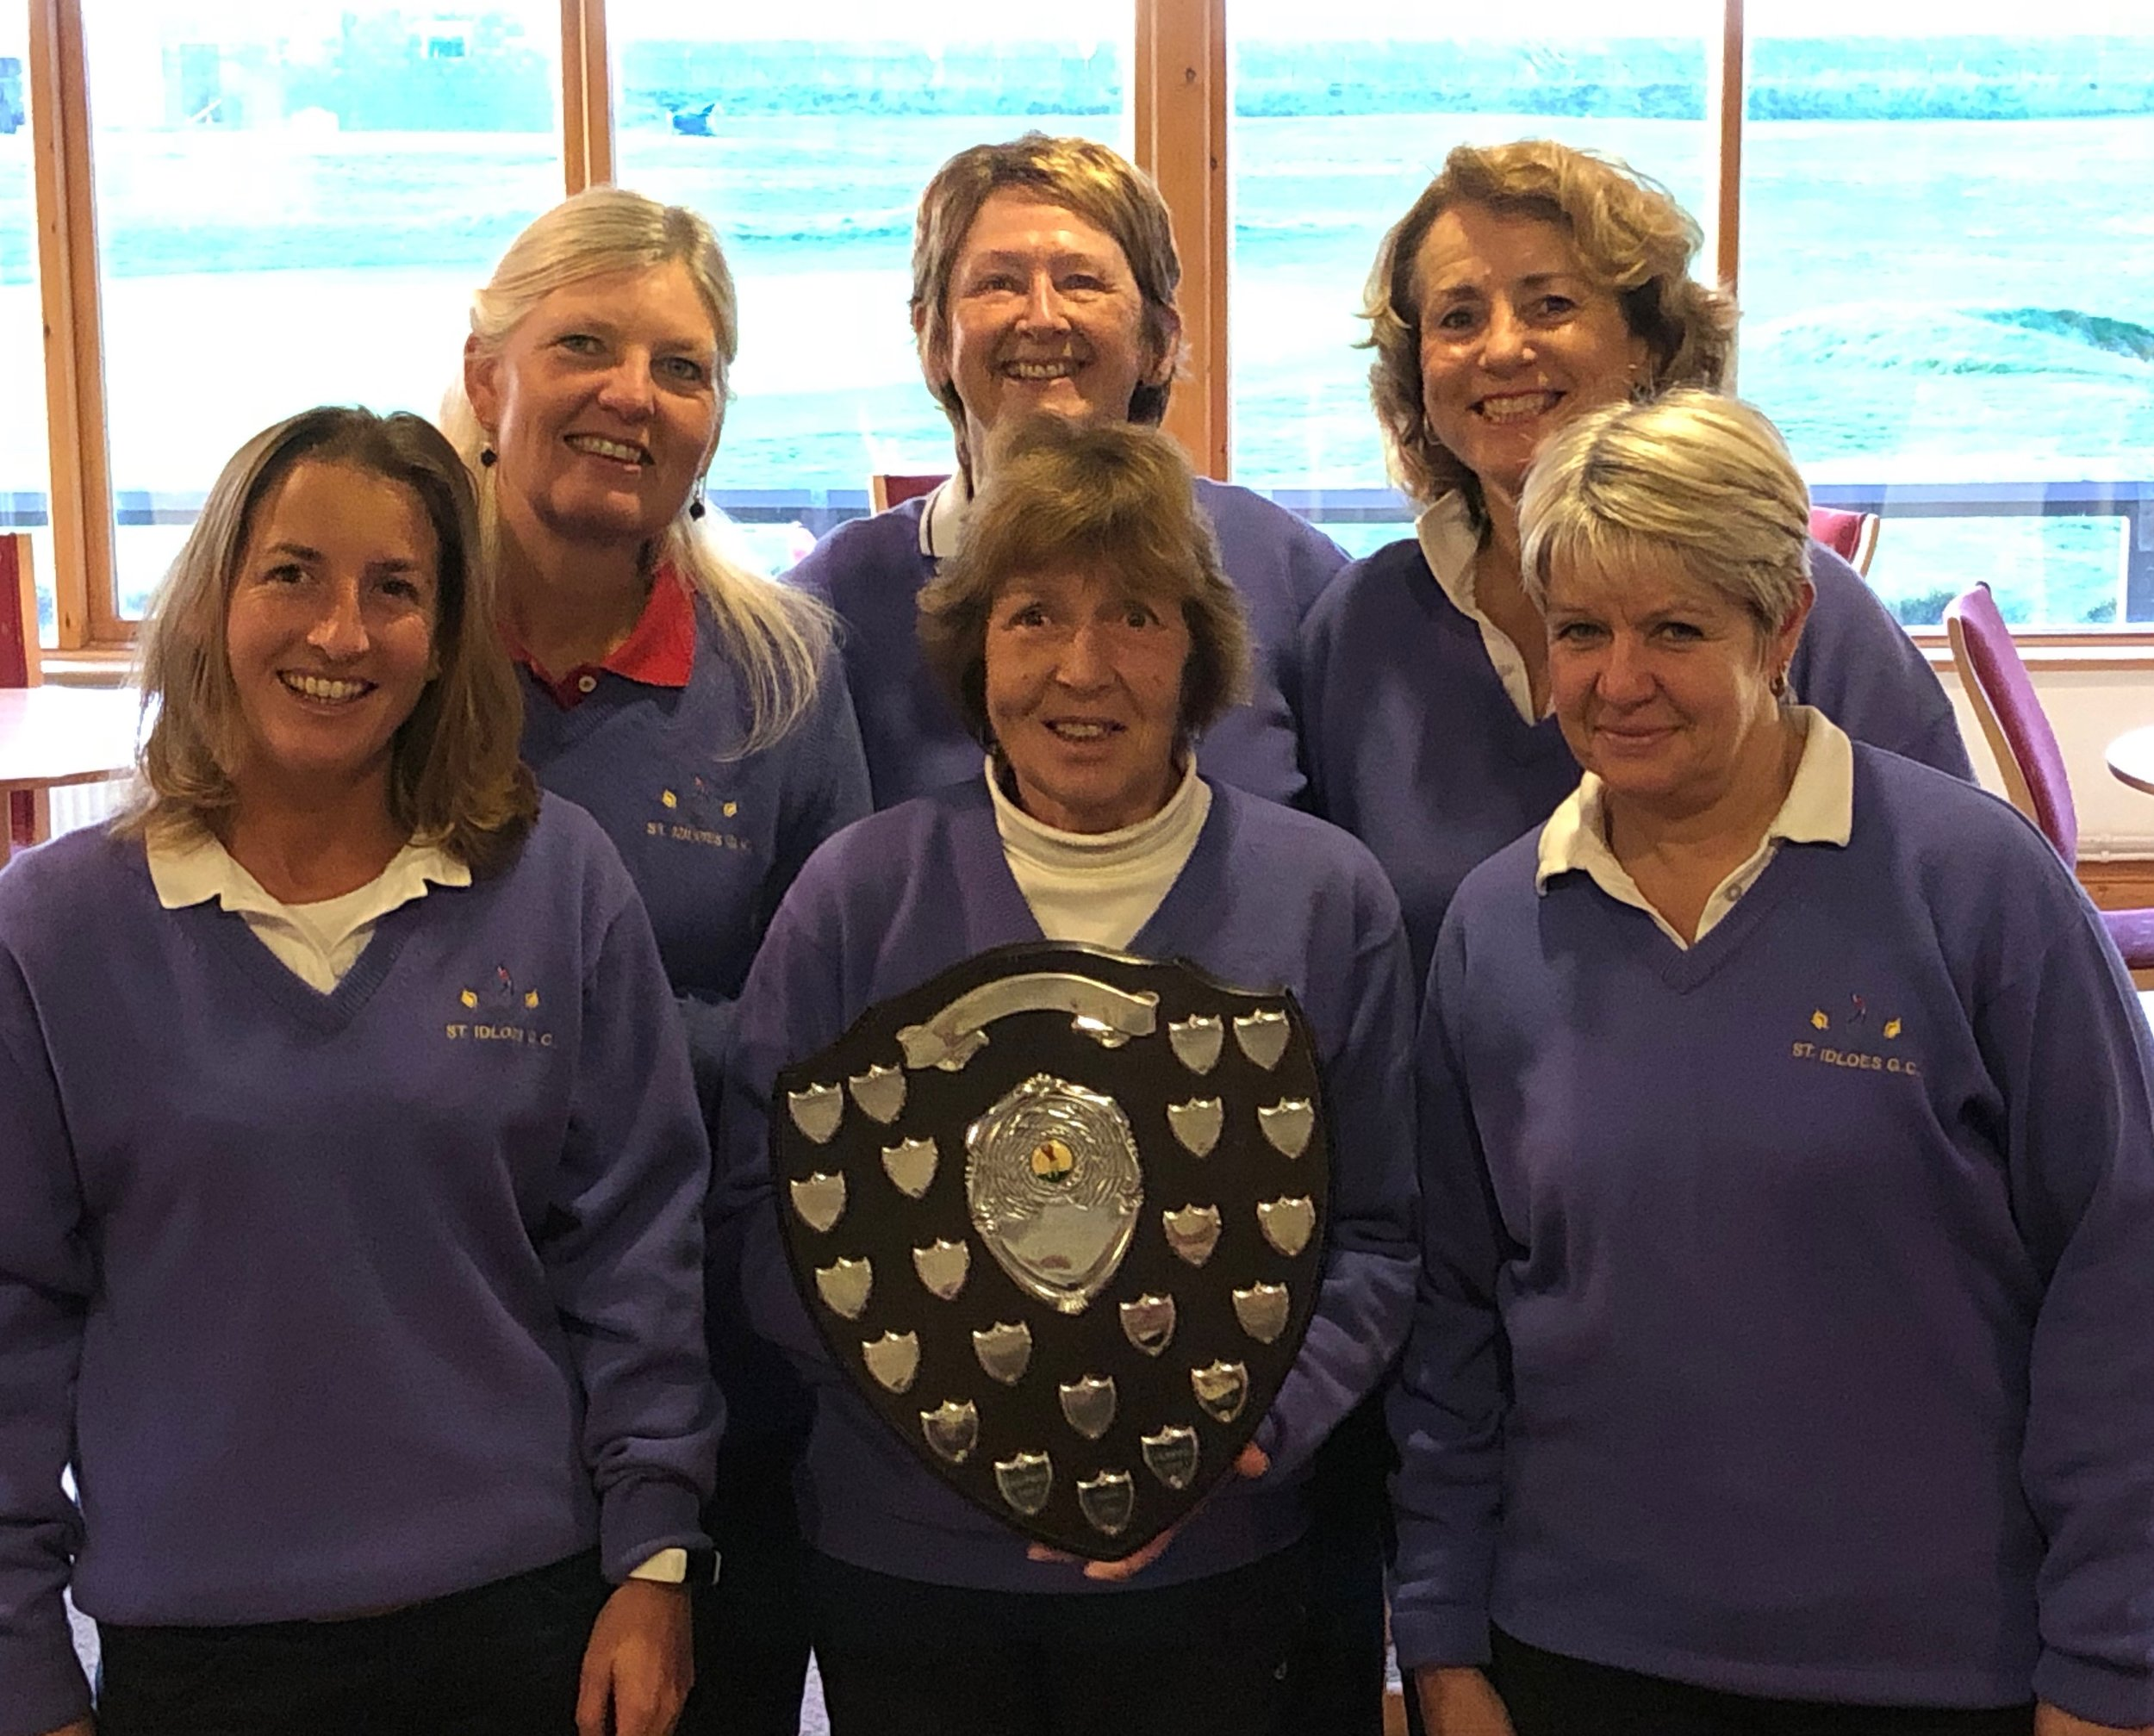 St Idloes. Winners of the MWCGA Handicap League 2018